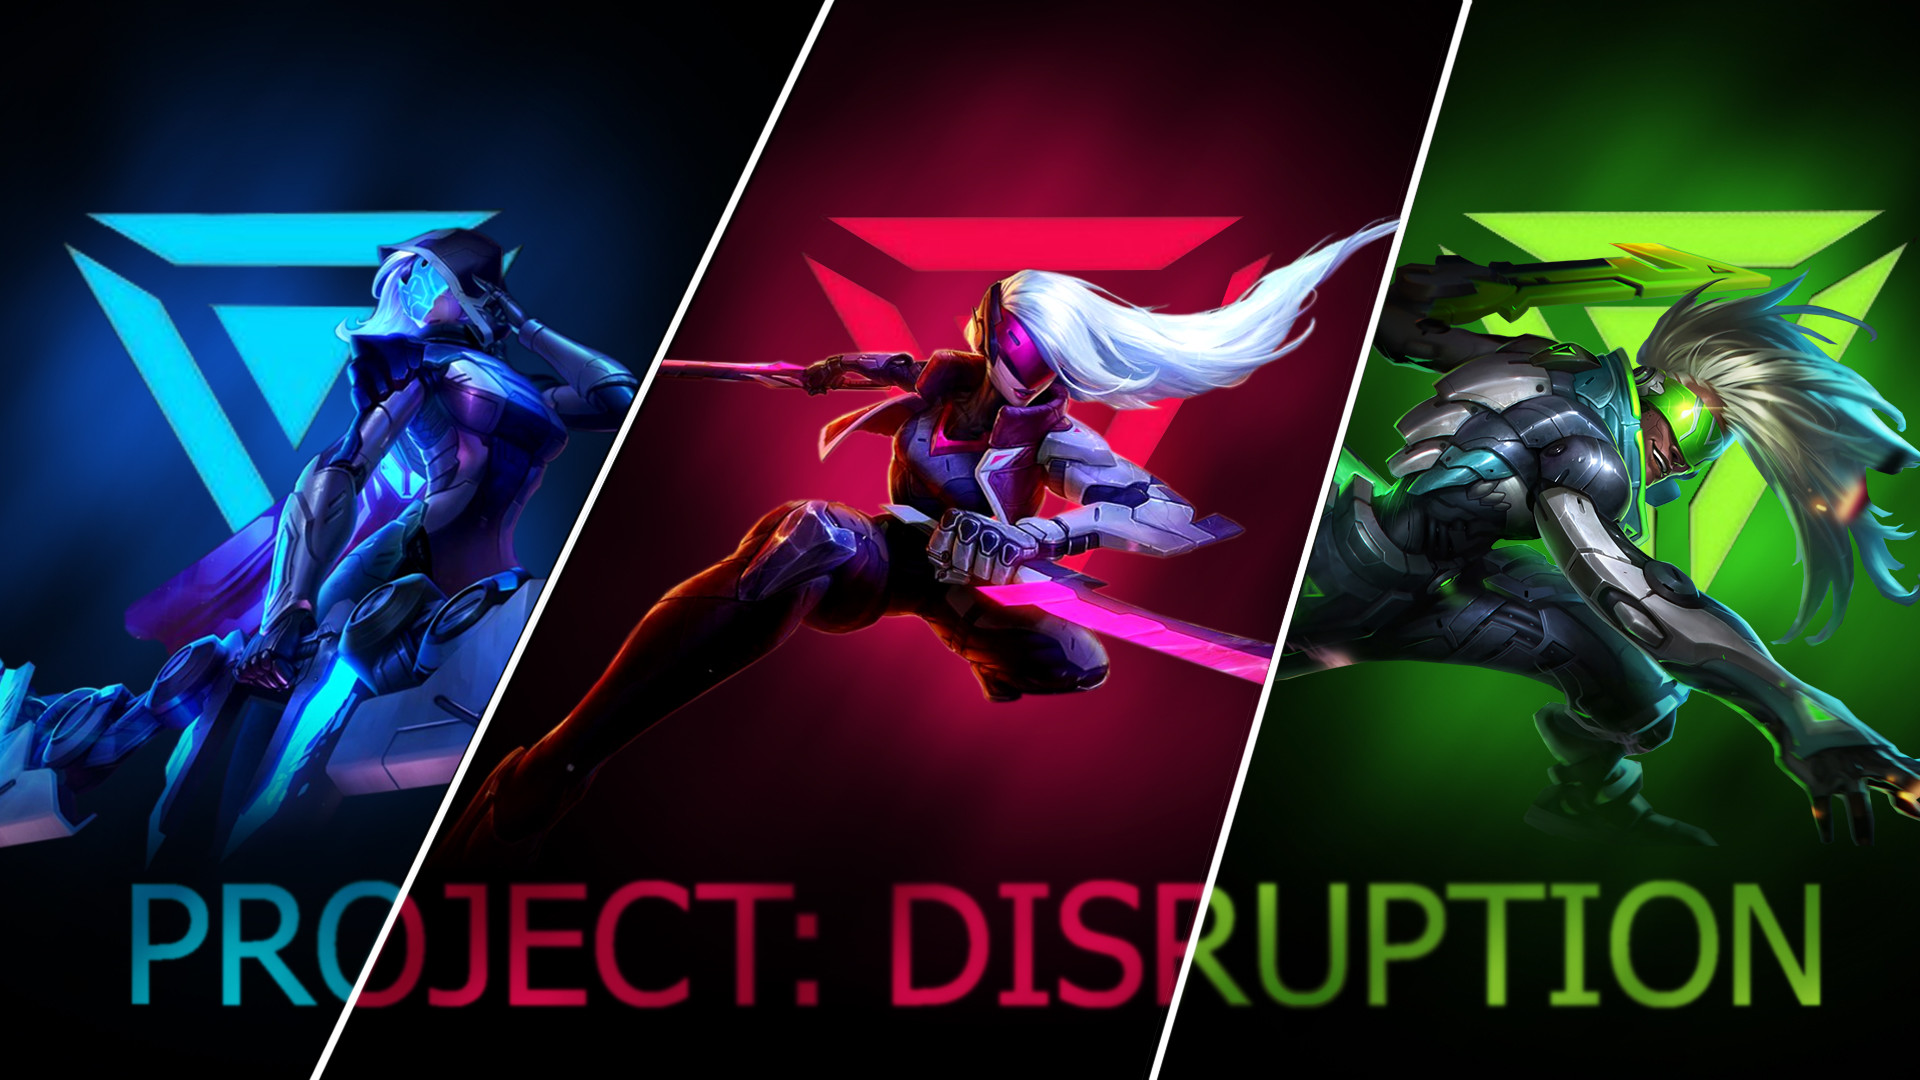 1920x1080 ... PROJECT: DISRUPTION Wallpaper - League of Legends by Sammylad298